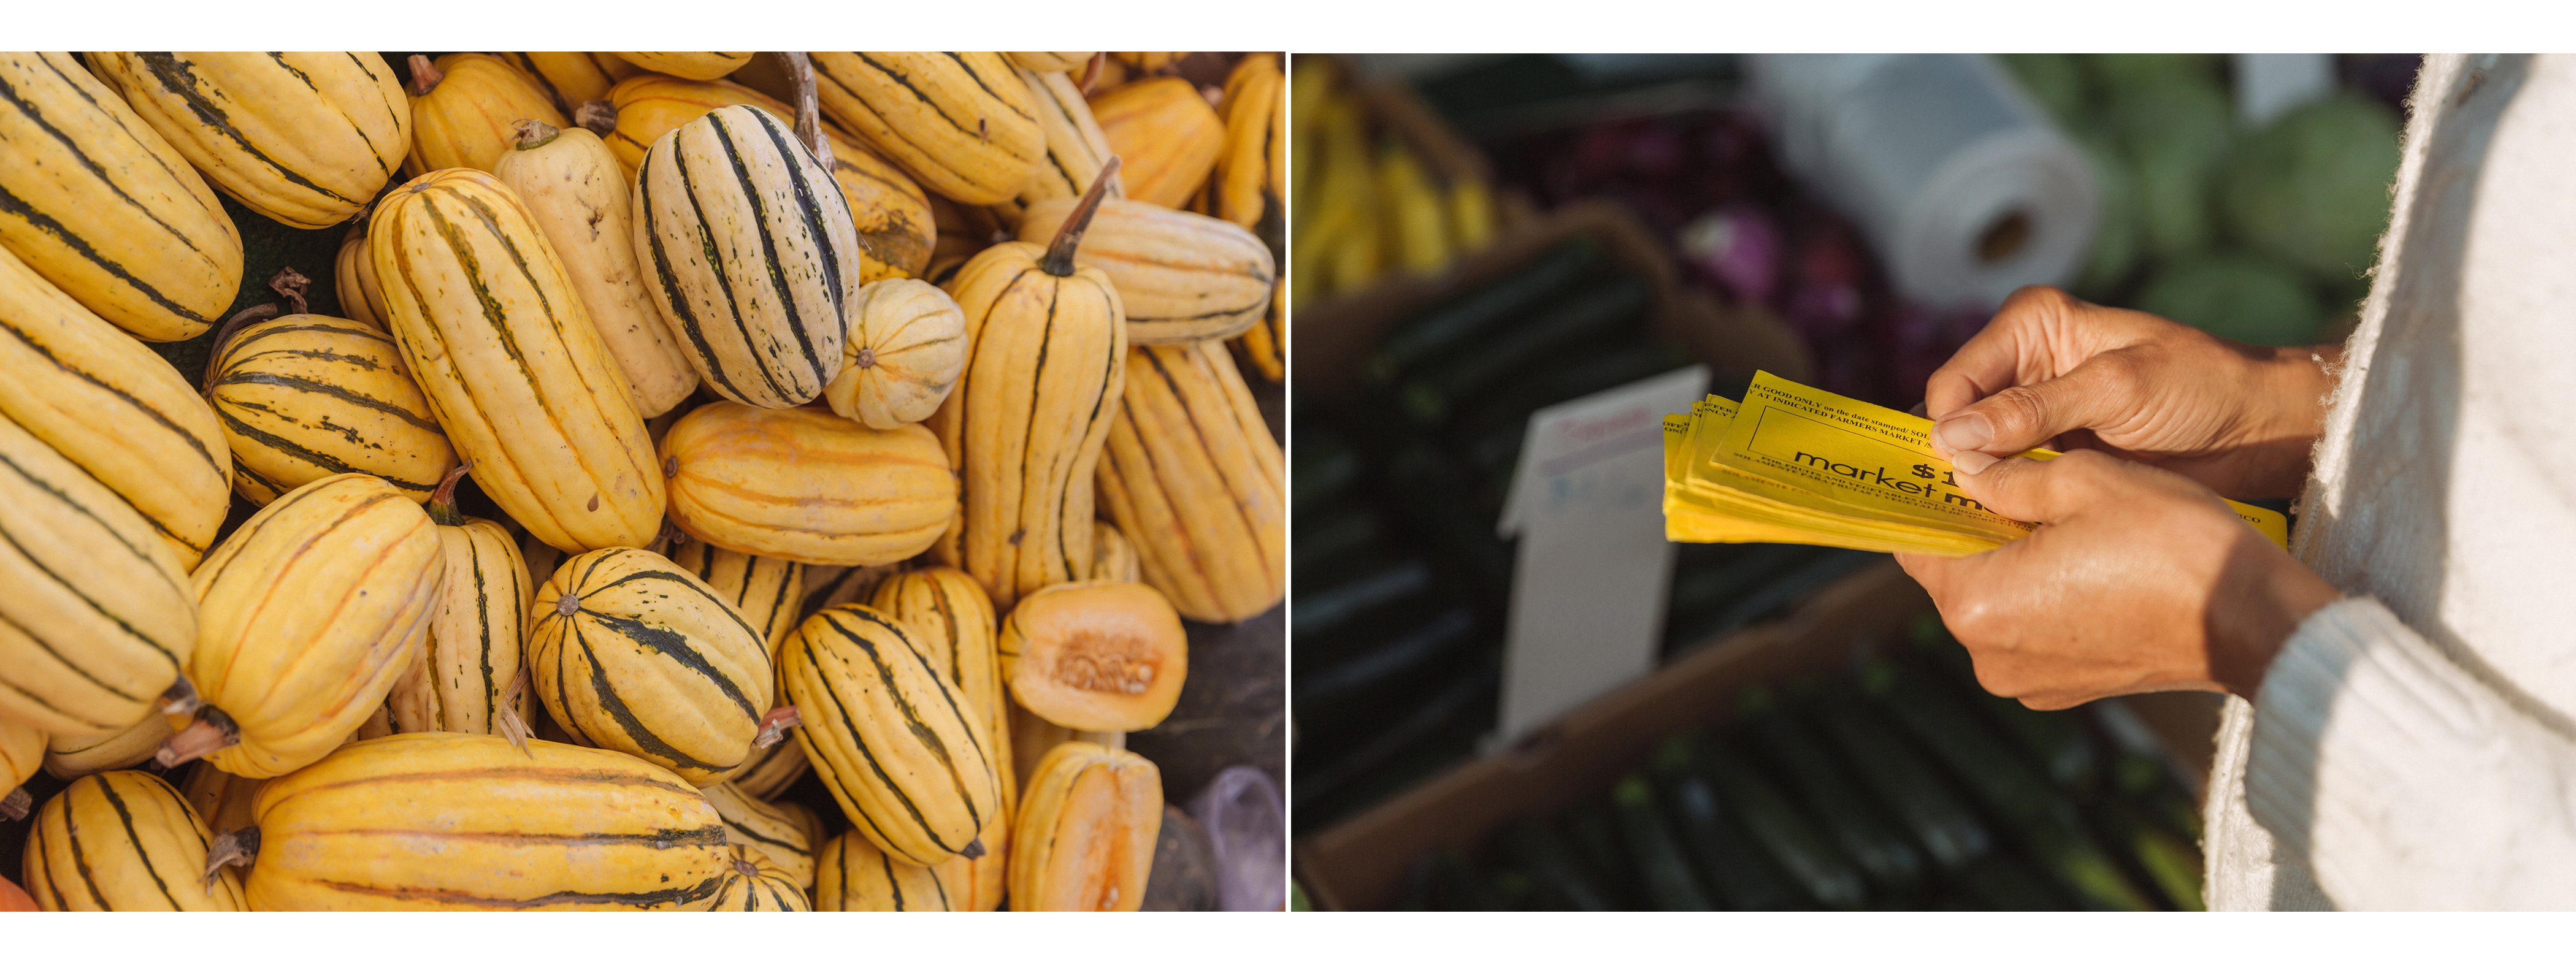 globalcitizenFoodInsecurity_kaylareeferphoto-diptych-market-match-edit.jpg